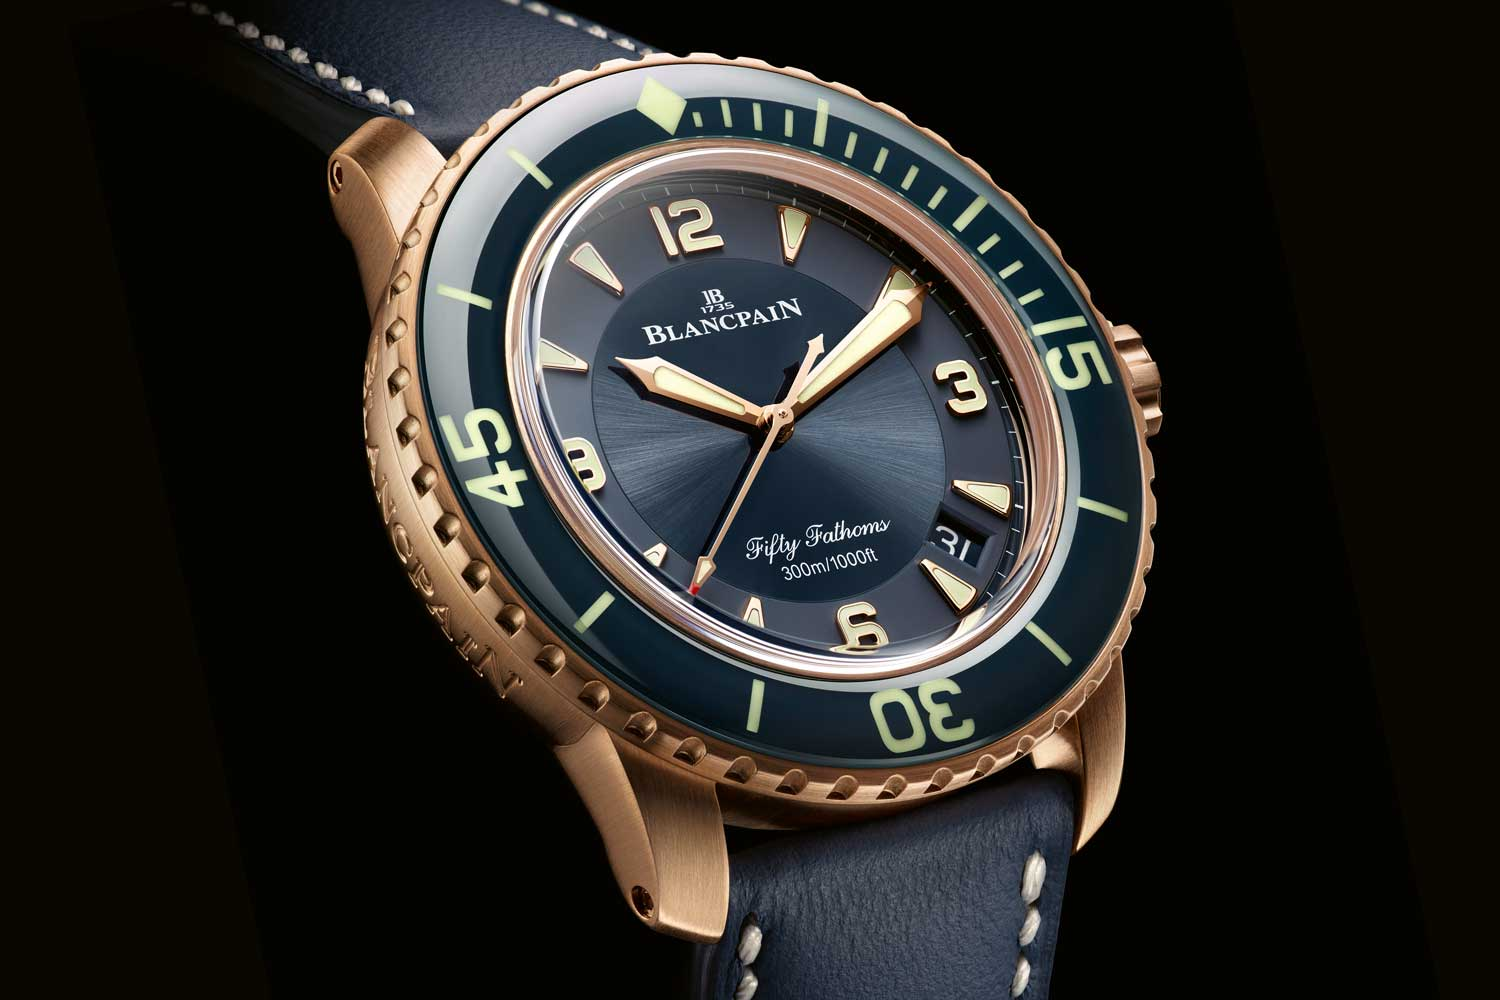 Fifty Fathoms Automatique in 18k rose gold